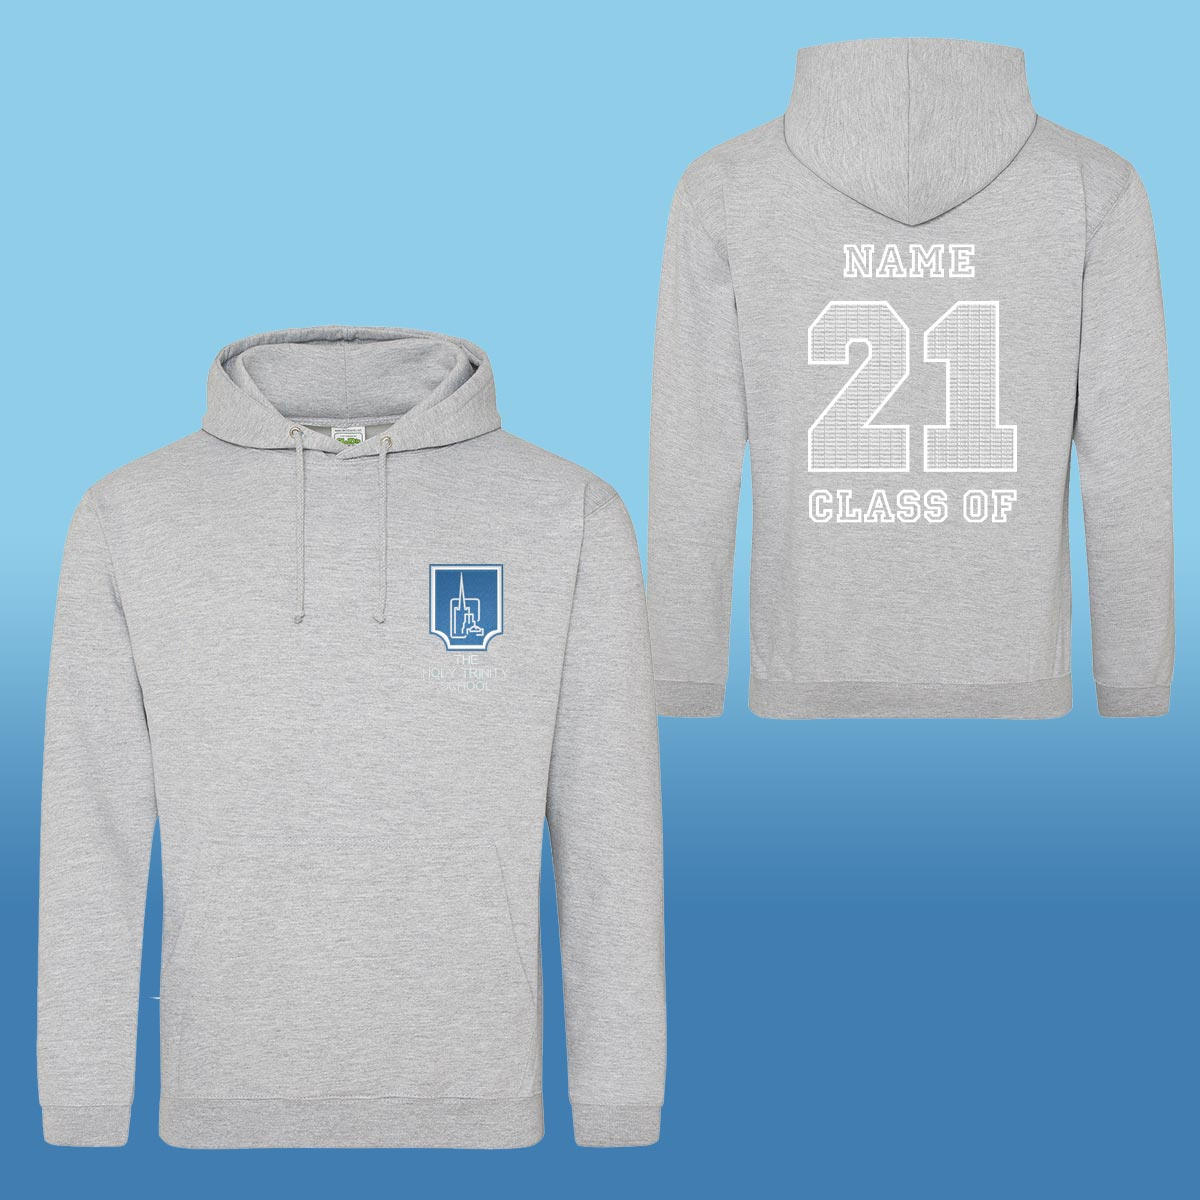 Holy Trinity Leavers Hoodies